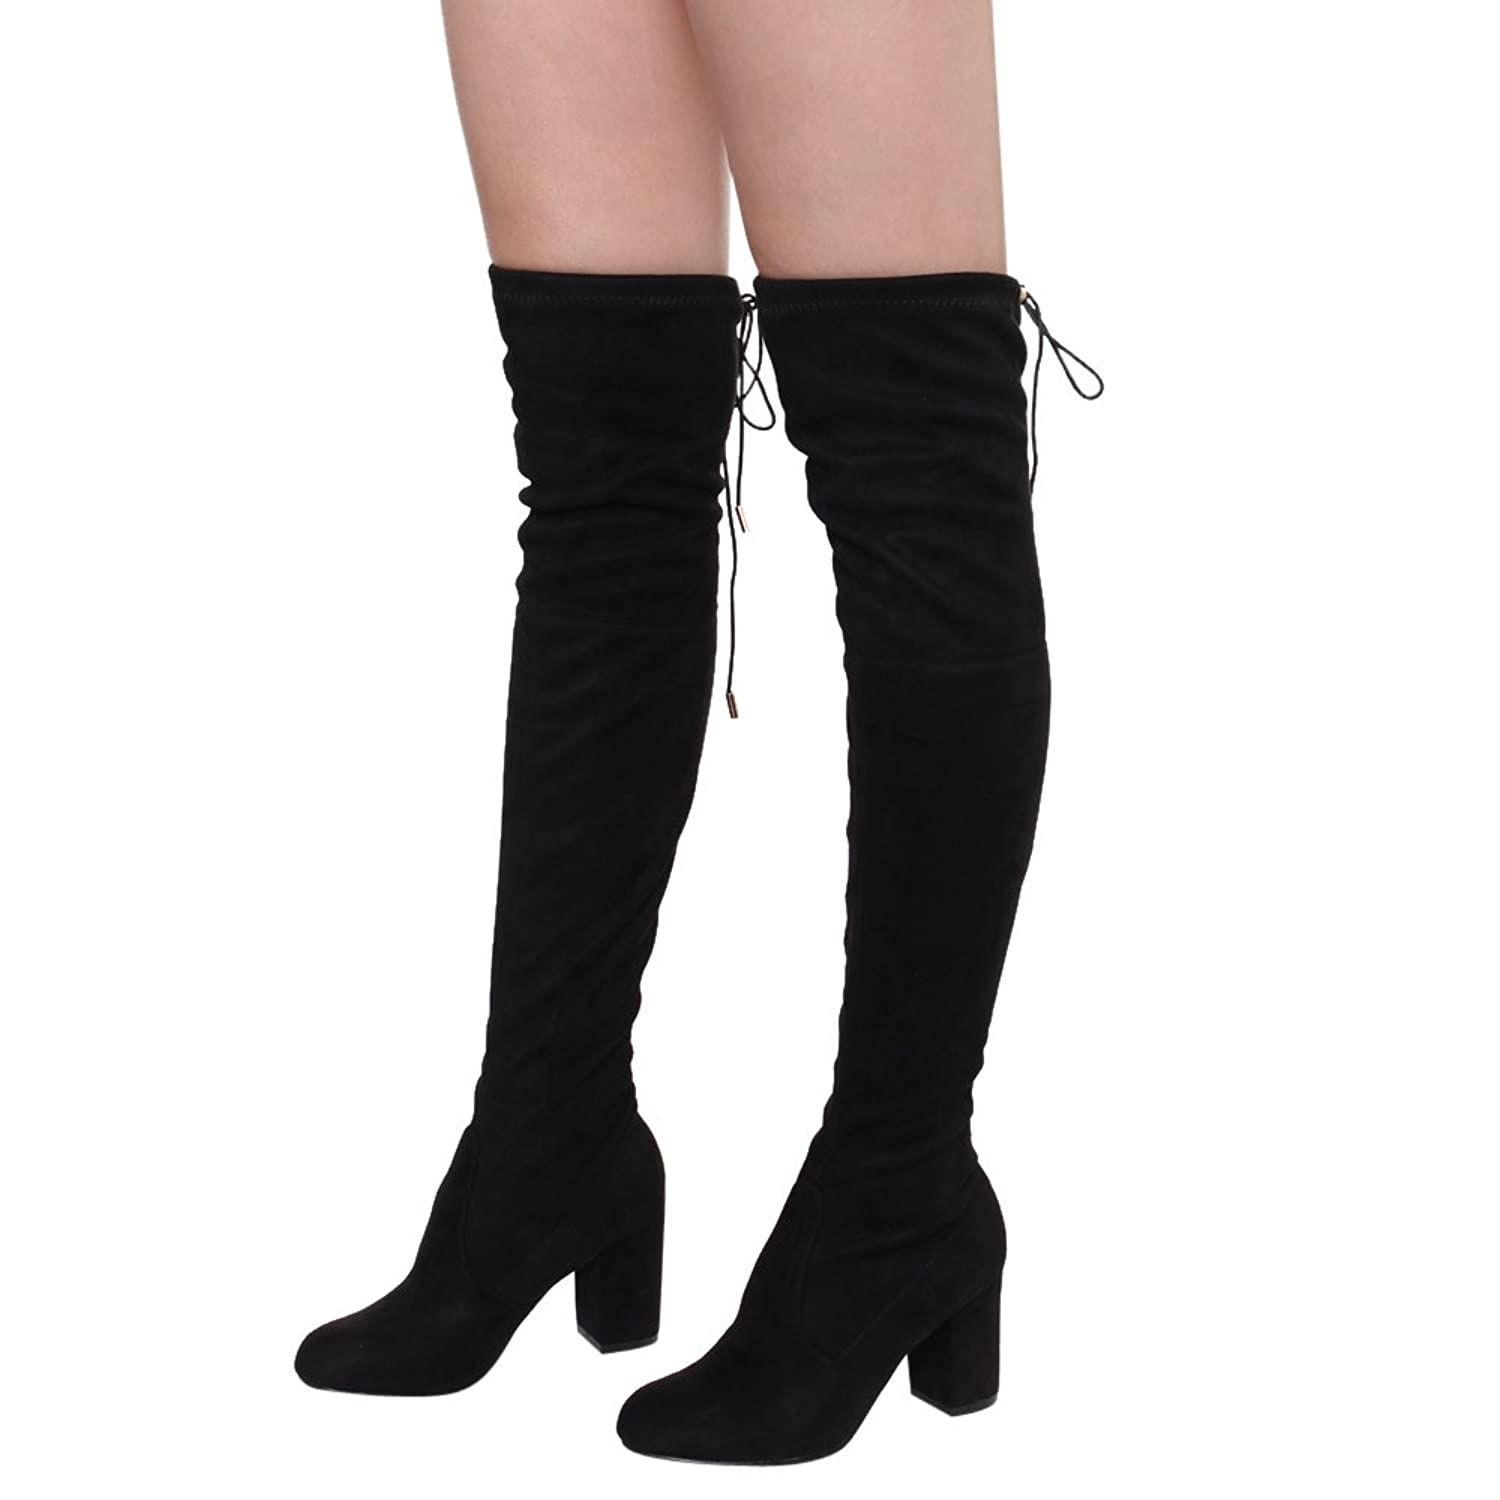 Women's Over The Knee Boots Stretchy Thigh High Chunky Block Heel Boots